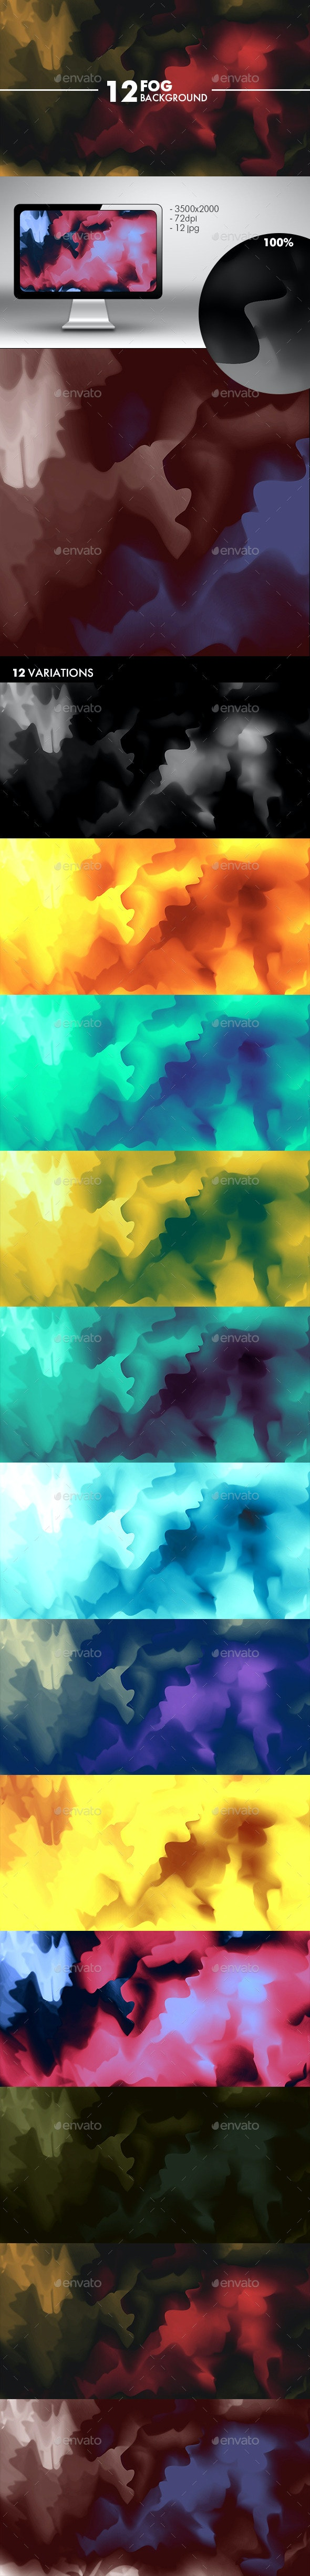 Fog Background - Abstract Backgrounds